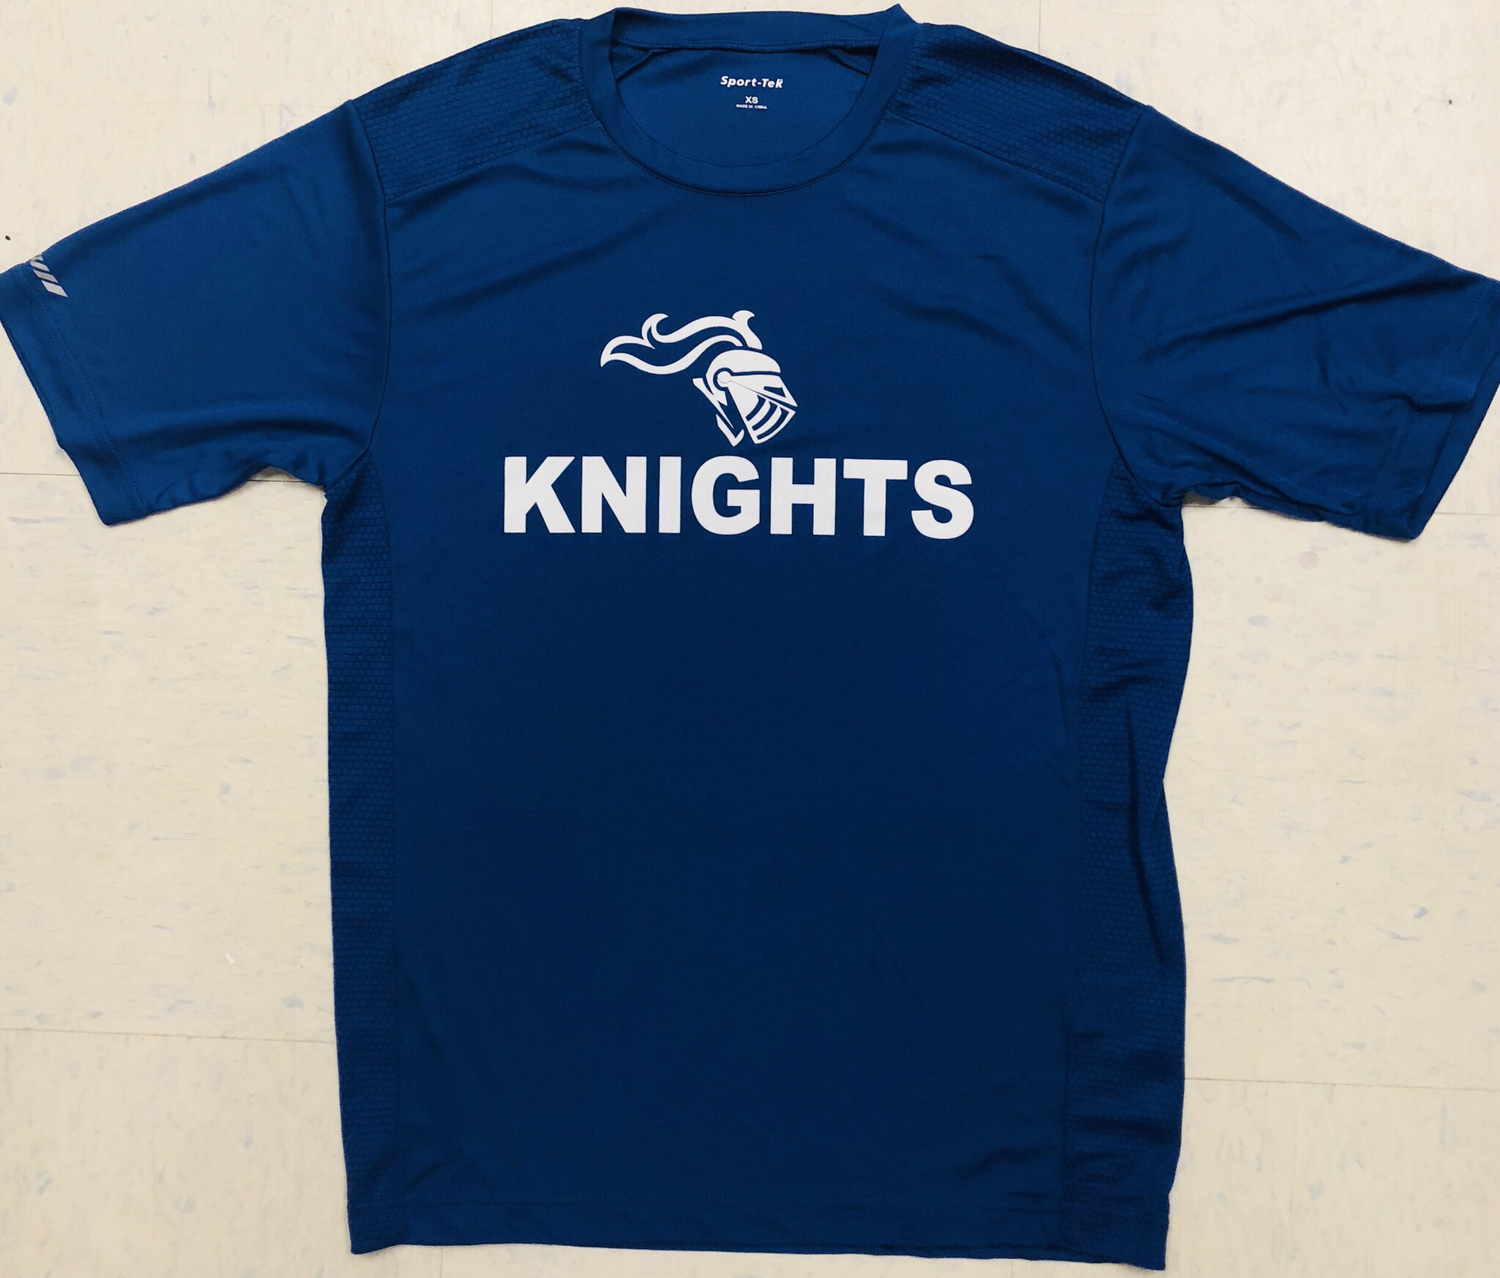 KNIGHTS Performance T-shirt NEW!